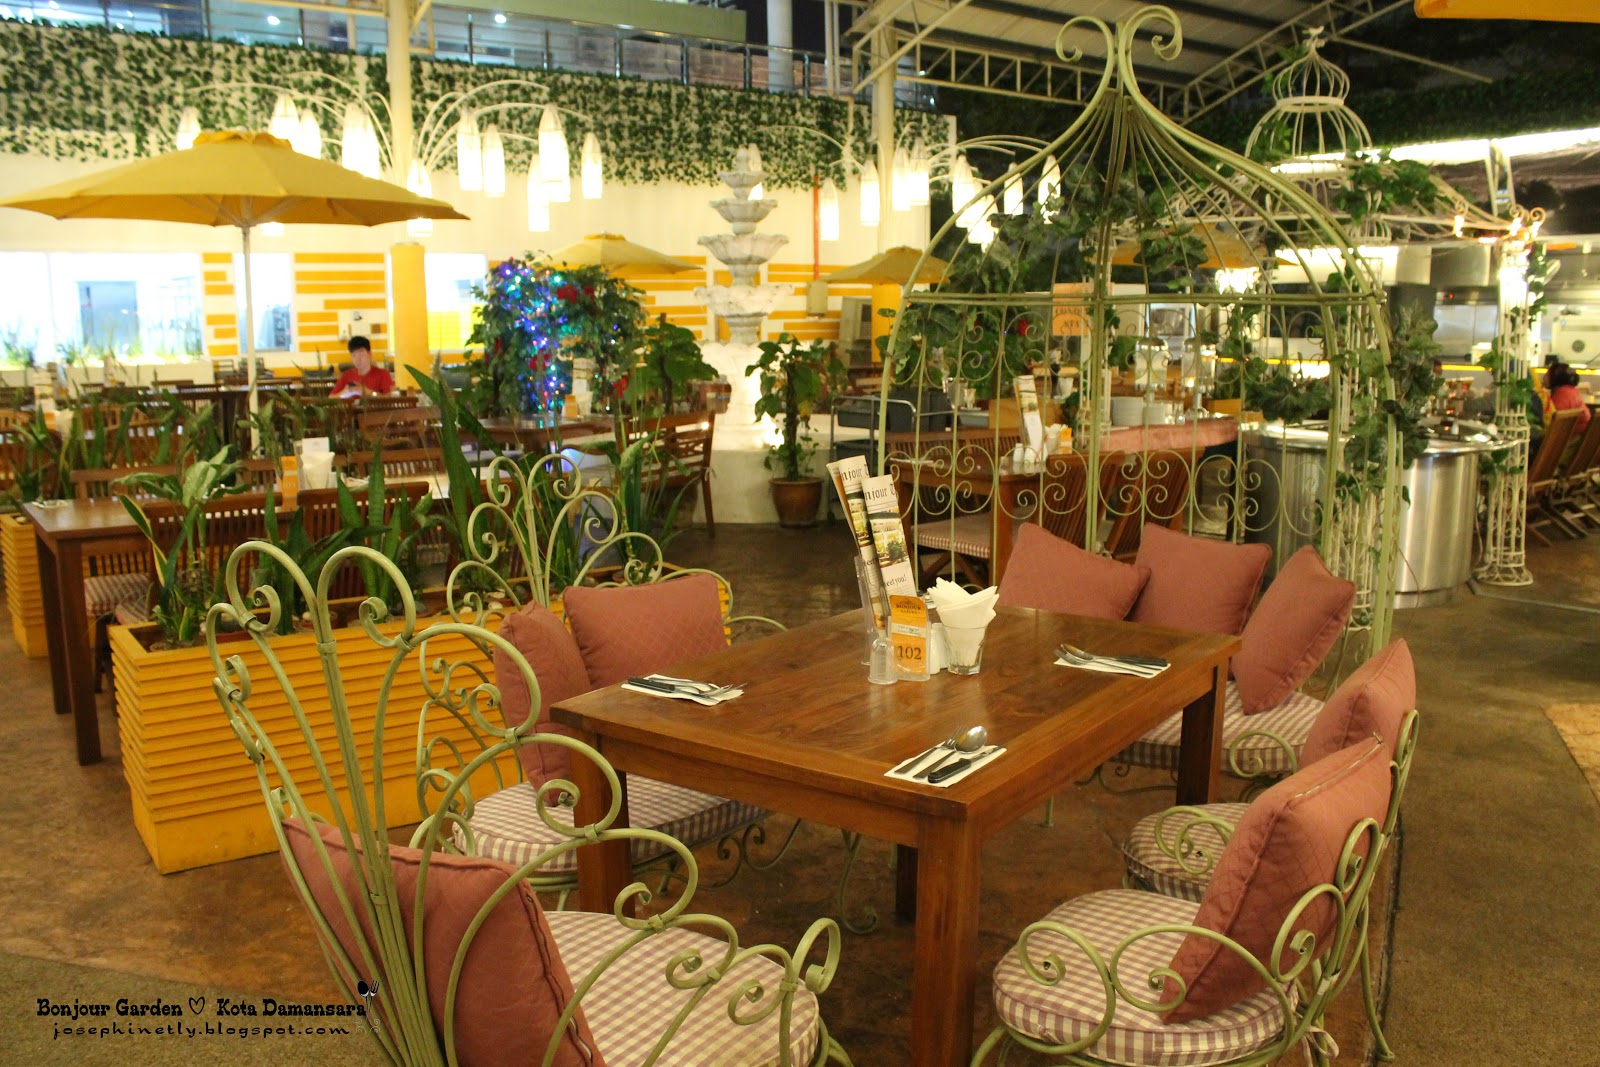 The Kitchen Garden Cafe Josephinetangcom Bonjour Garden Bakery Cafe Kota Damansara